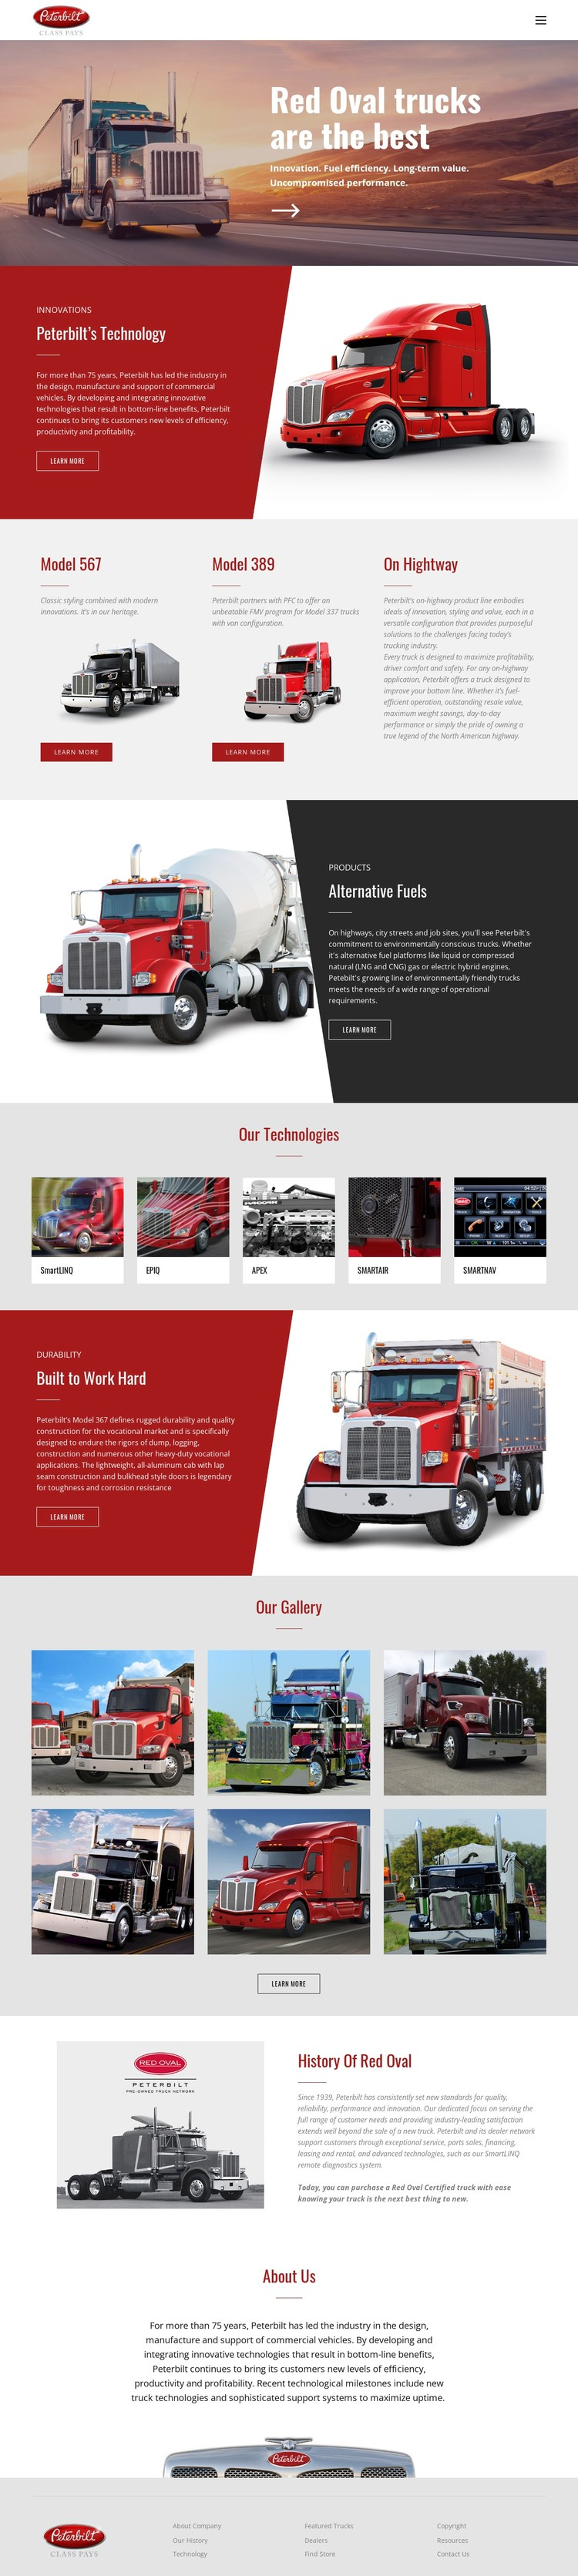 Red oval truck transportaion Static Site Generator